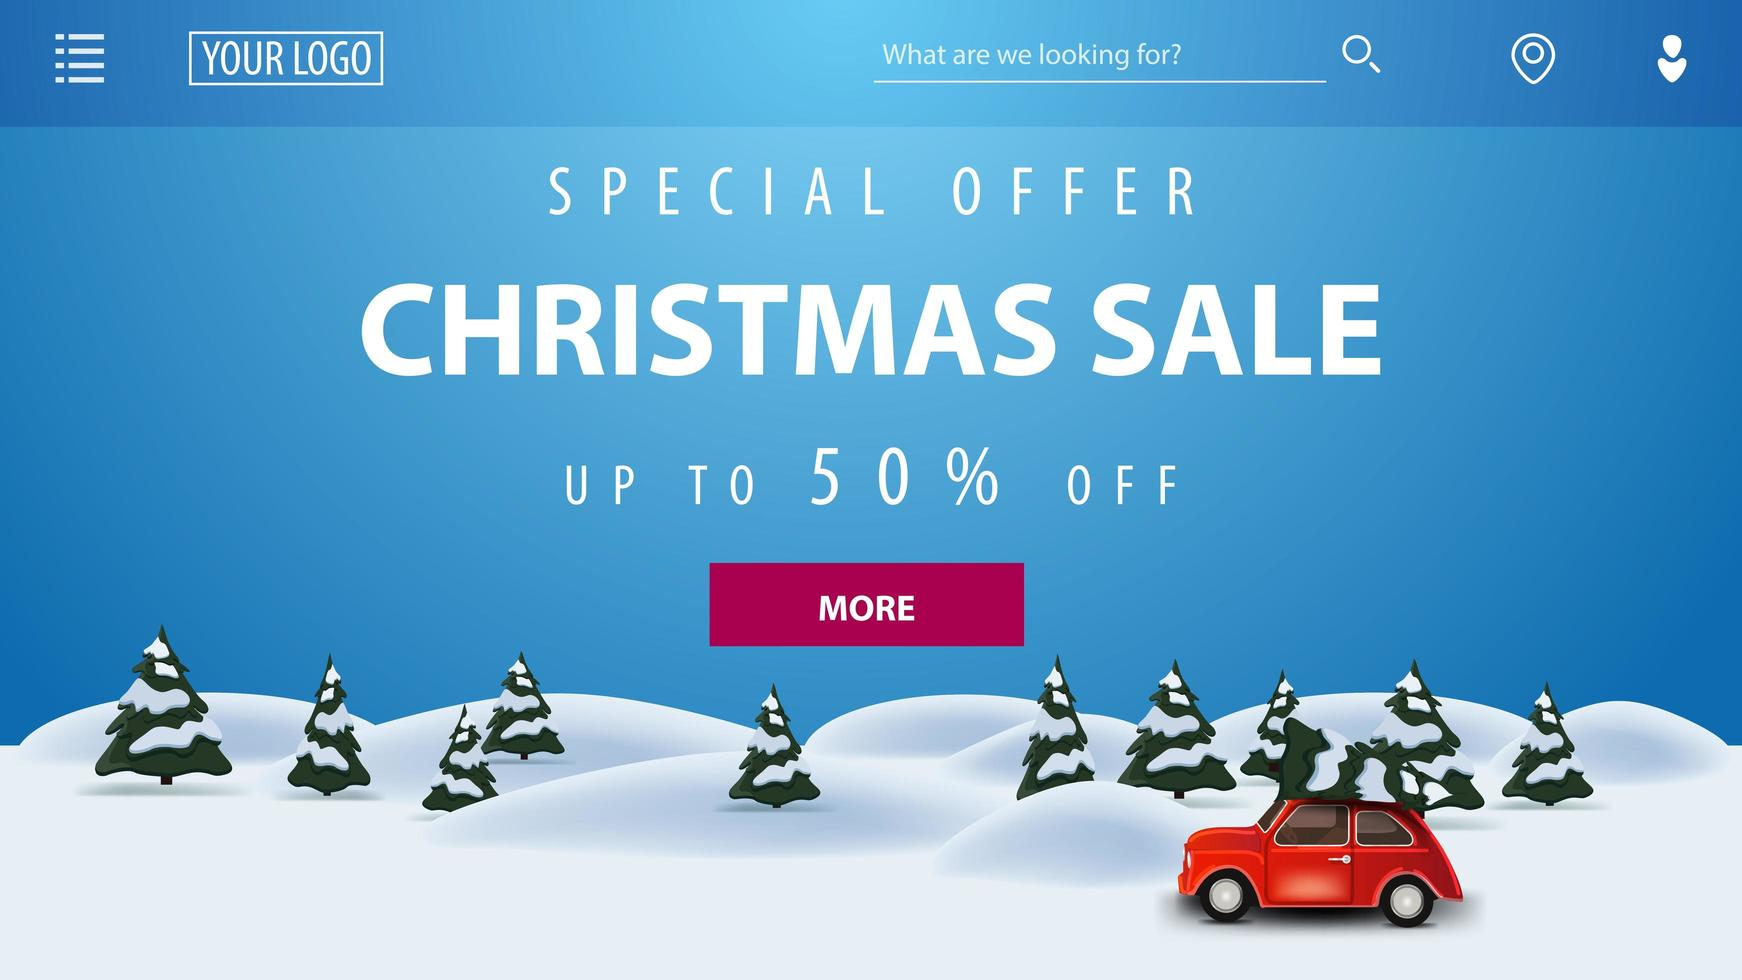 Special offer, Christmas sale, up to 50 off, blue discaunt banner with cartoon winter lndscape and red vintage car carrying Christmas tree vector